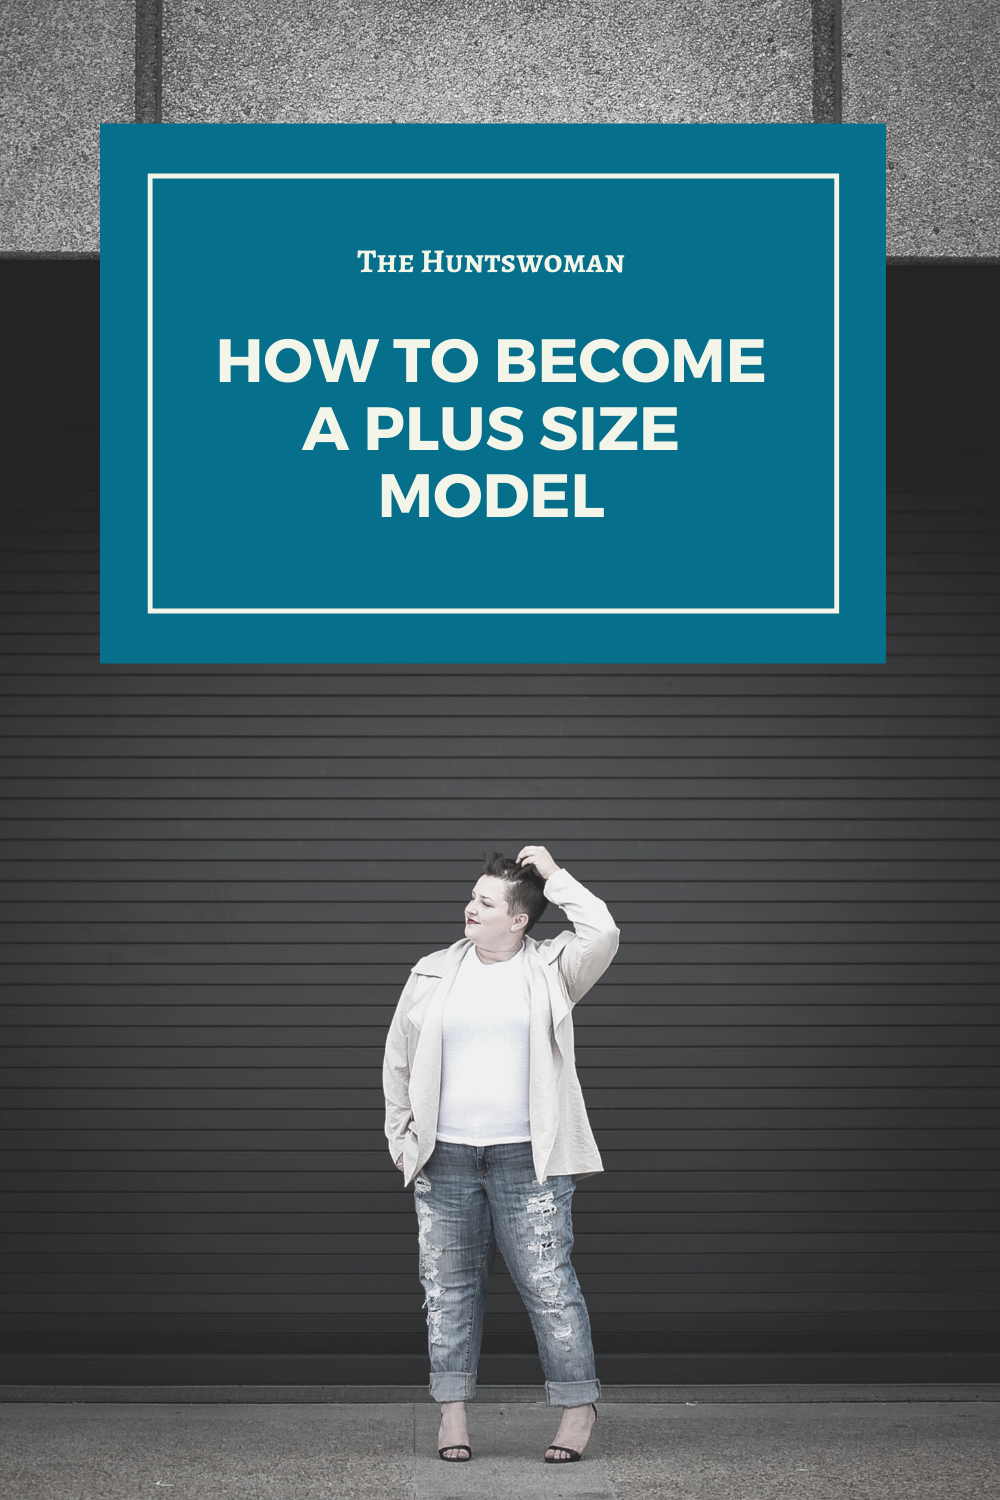 Tips for becoming a plus size model